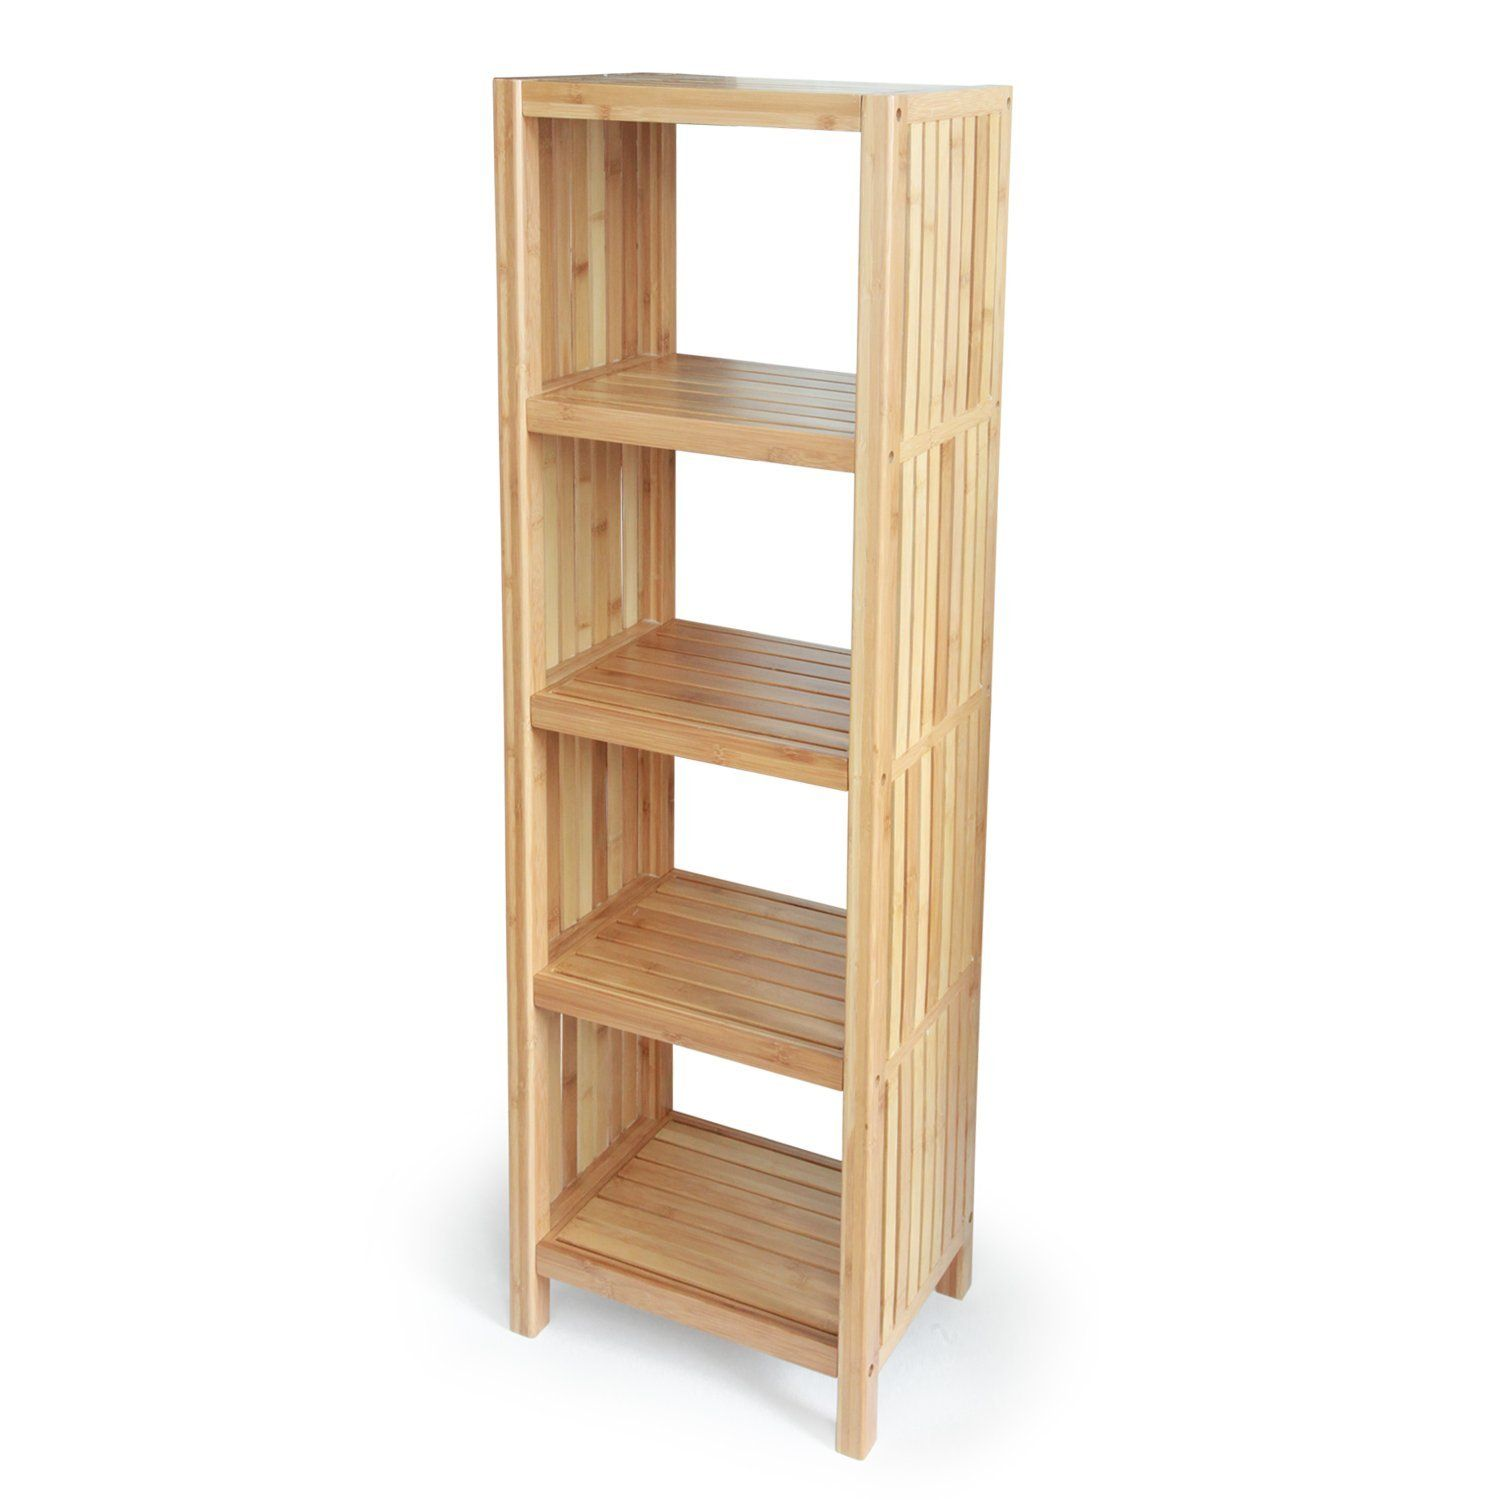 Bamboo Freestanding Organizing Shelf Only At $6995